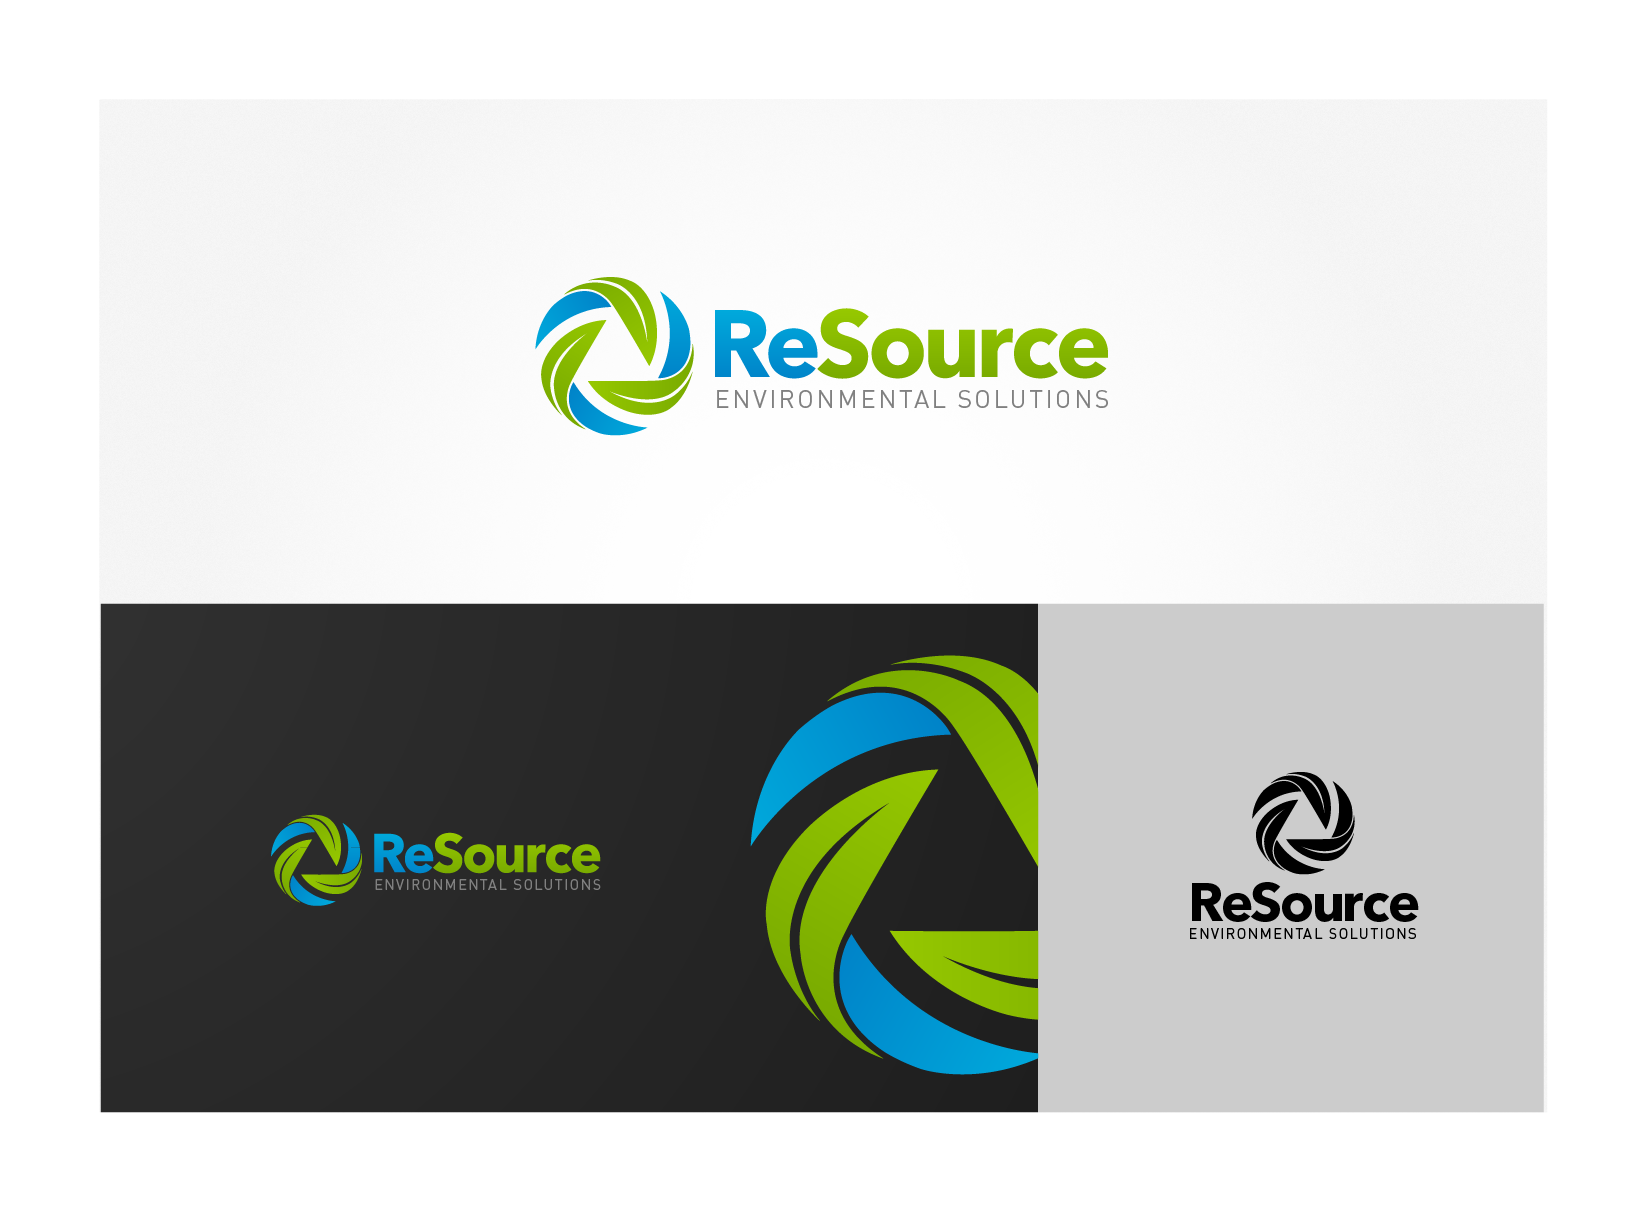 ReSource Environmental Solutions needs a new logo